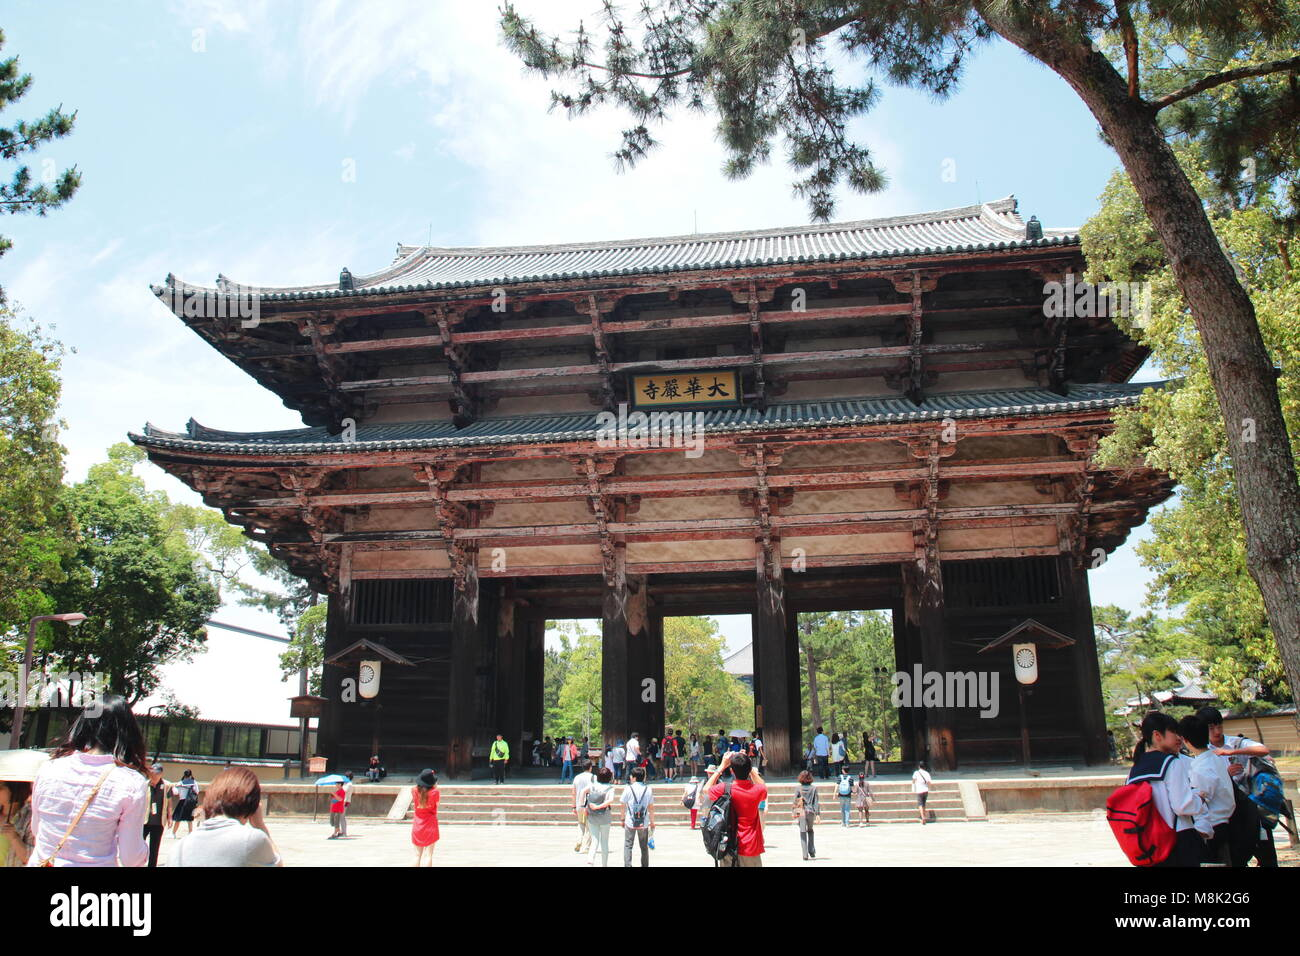 Crowded Chinese tourists visiting Todaiji temple complex in Nara, Japan - Stock Image